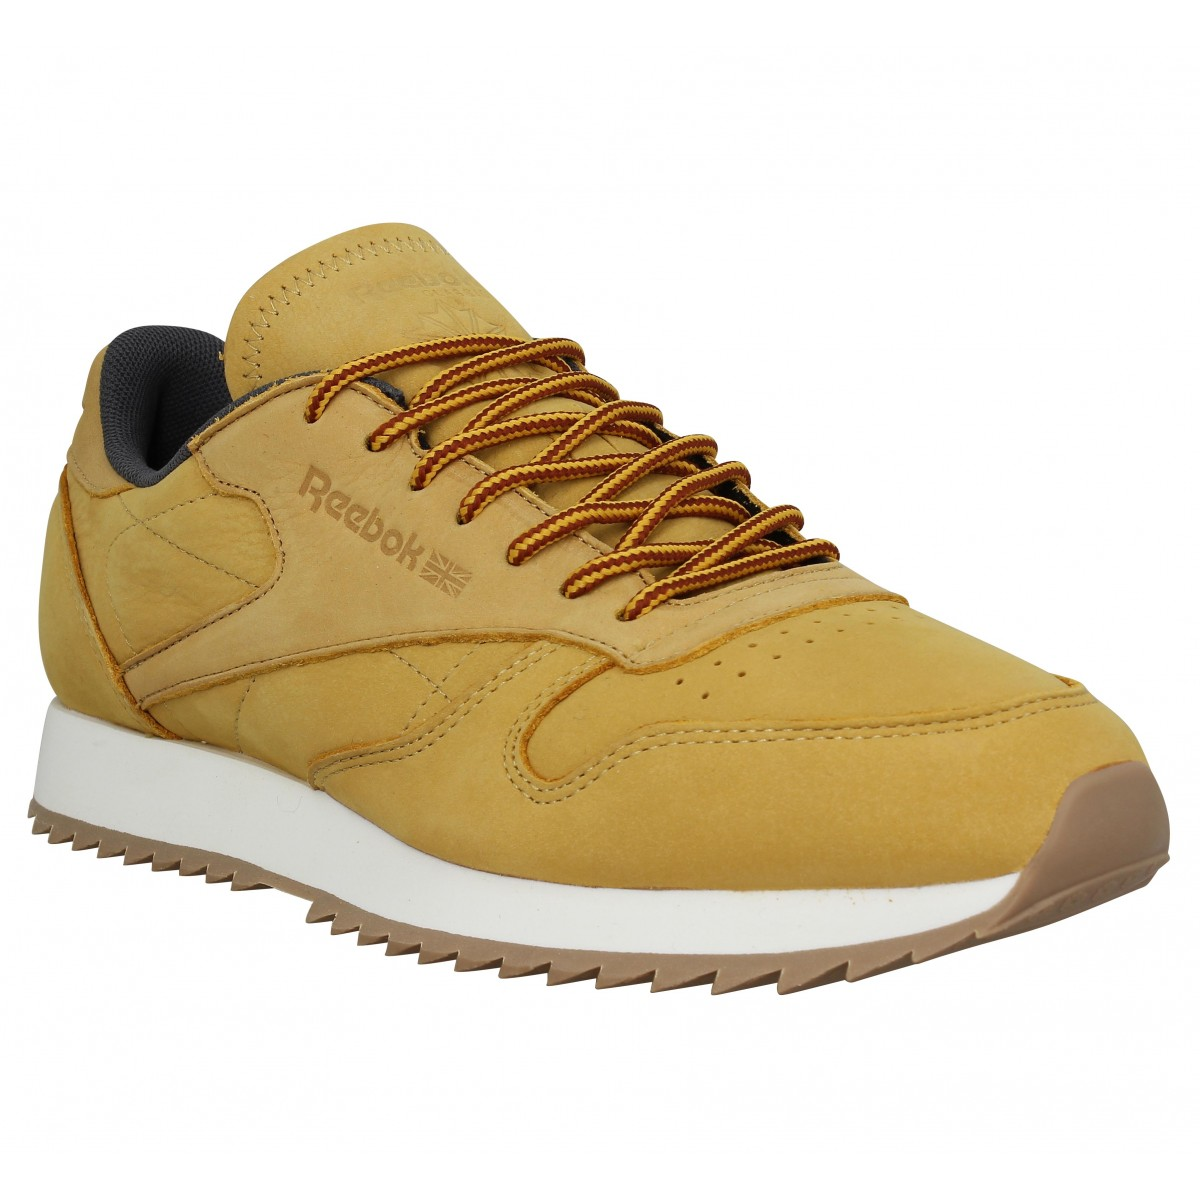 Baskets REEBOK Classic Leather Ripple nubuck Homme Gold